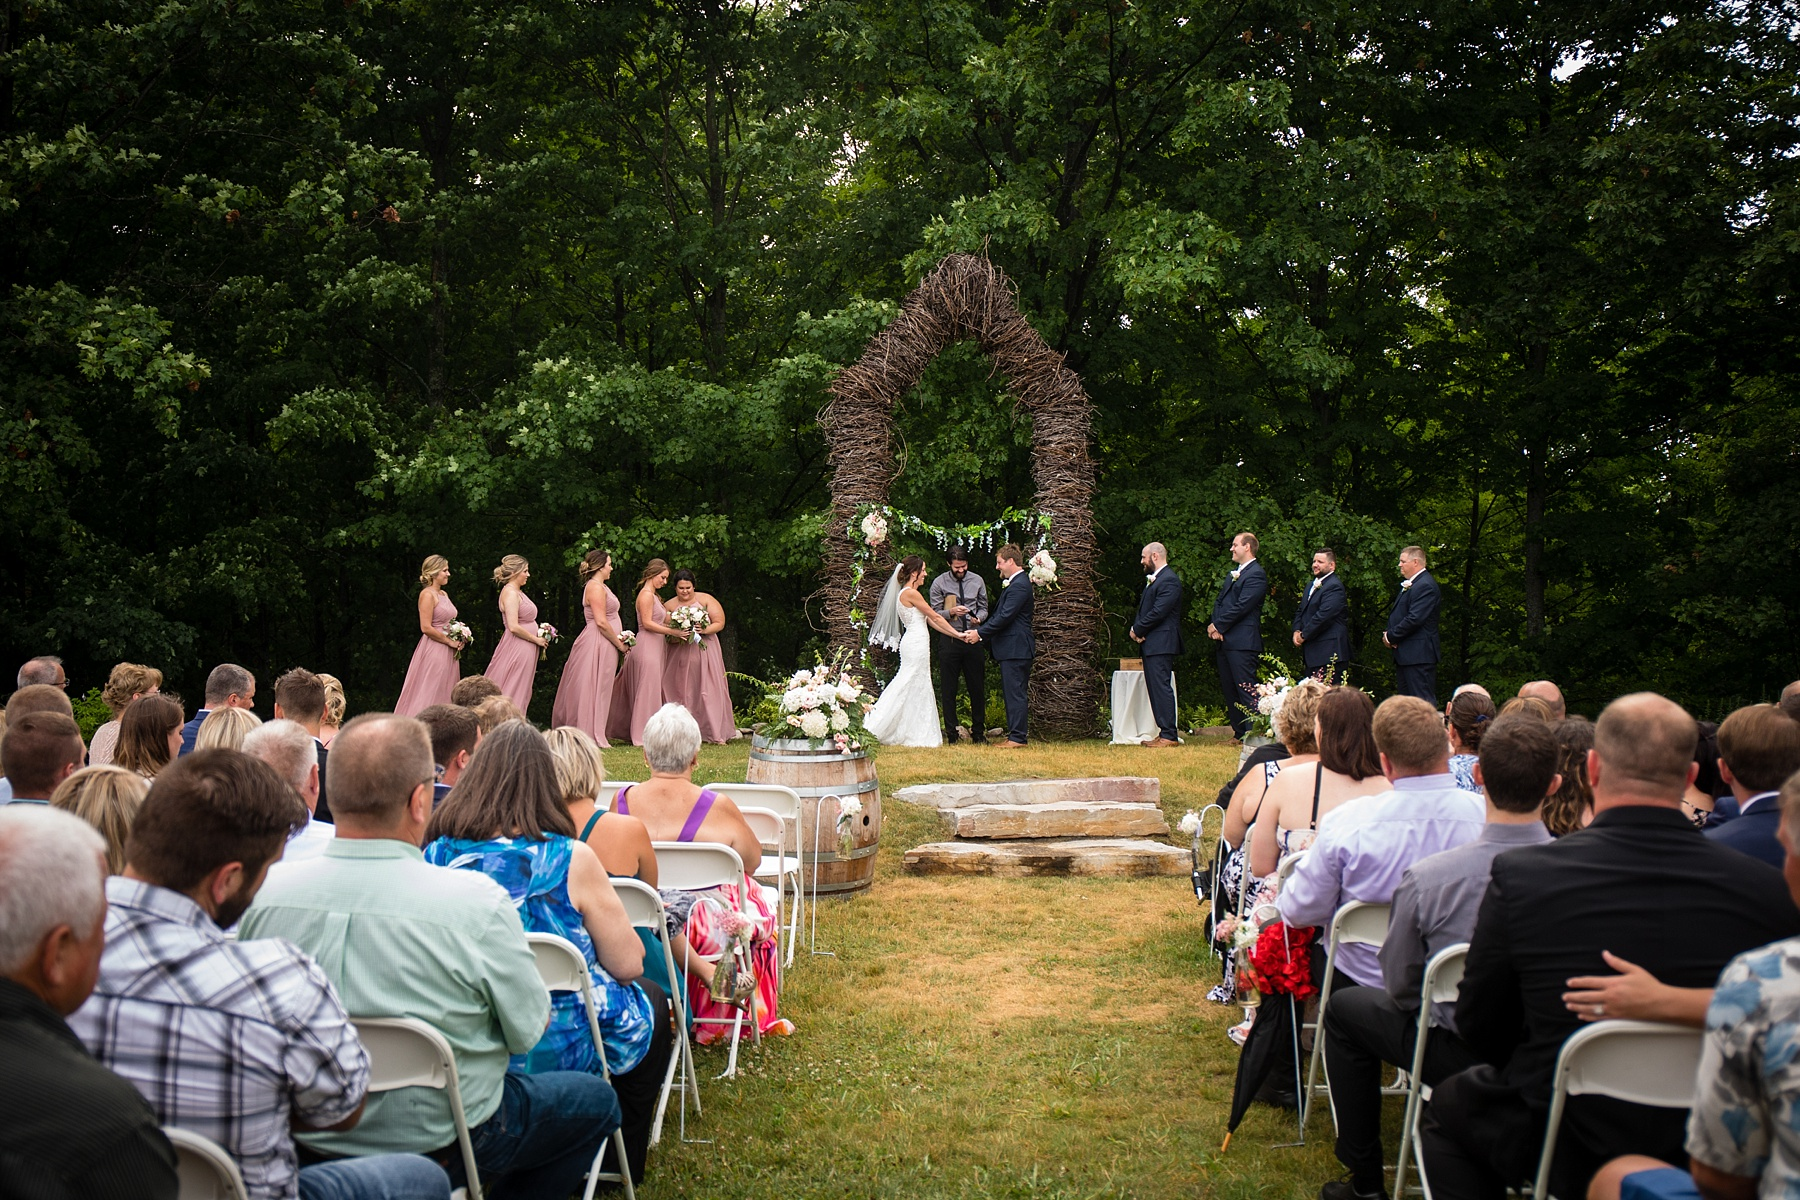 Brandon_Shafer_Photography_Elizabeth_Scott_Traverse_City_Wedding_0033.jpg